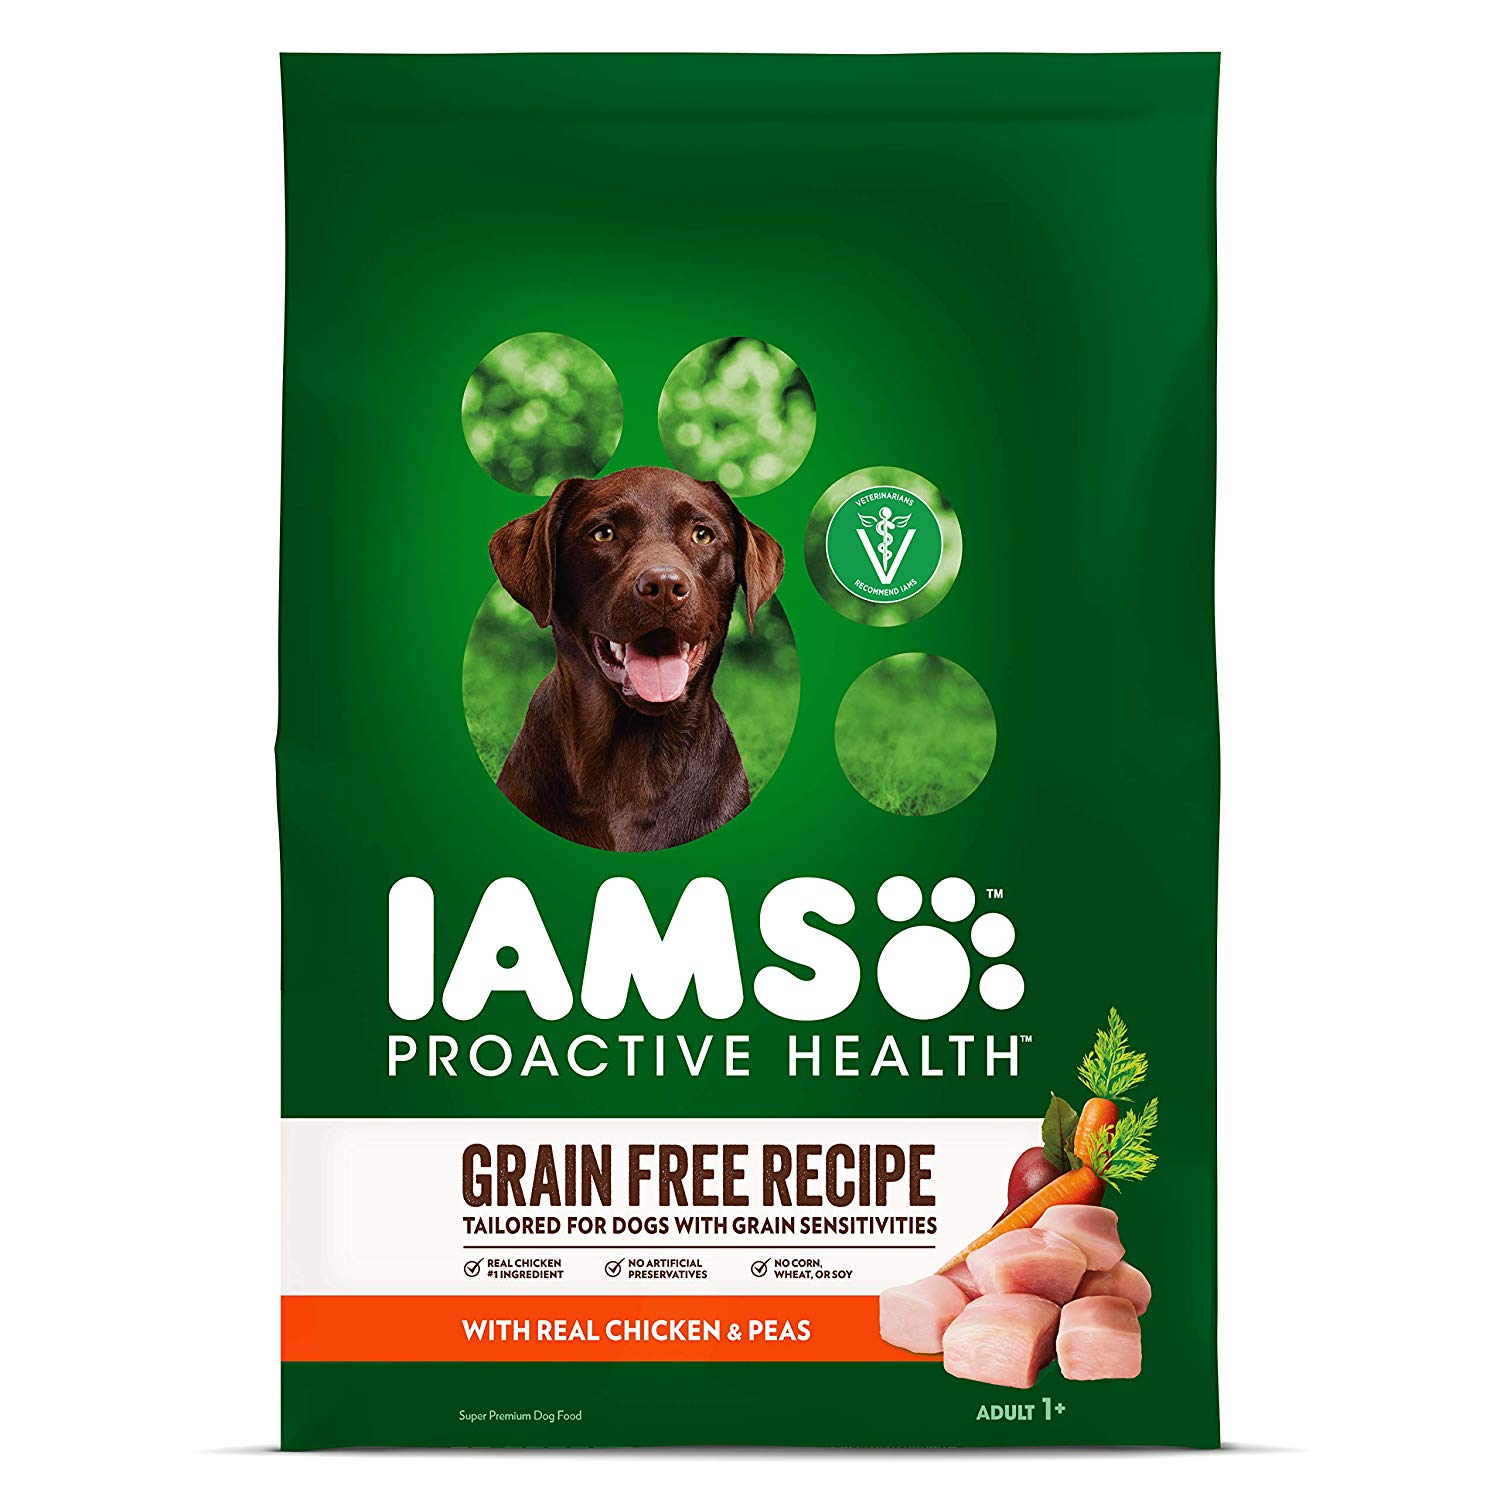 IAMS Proactive Grain Free Dog Food